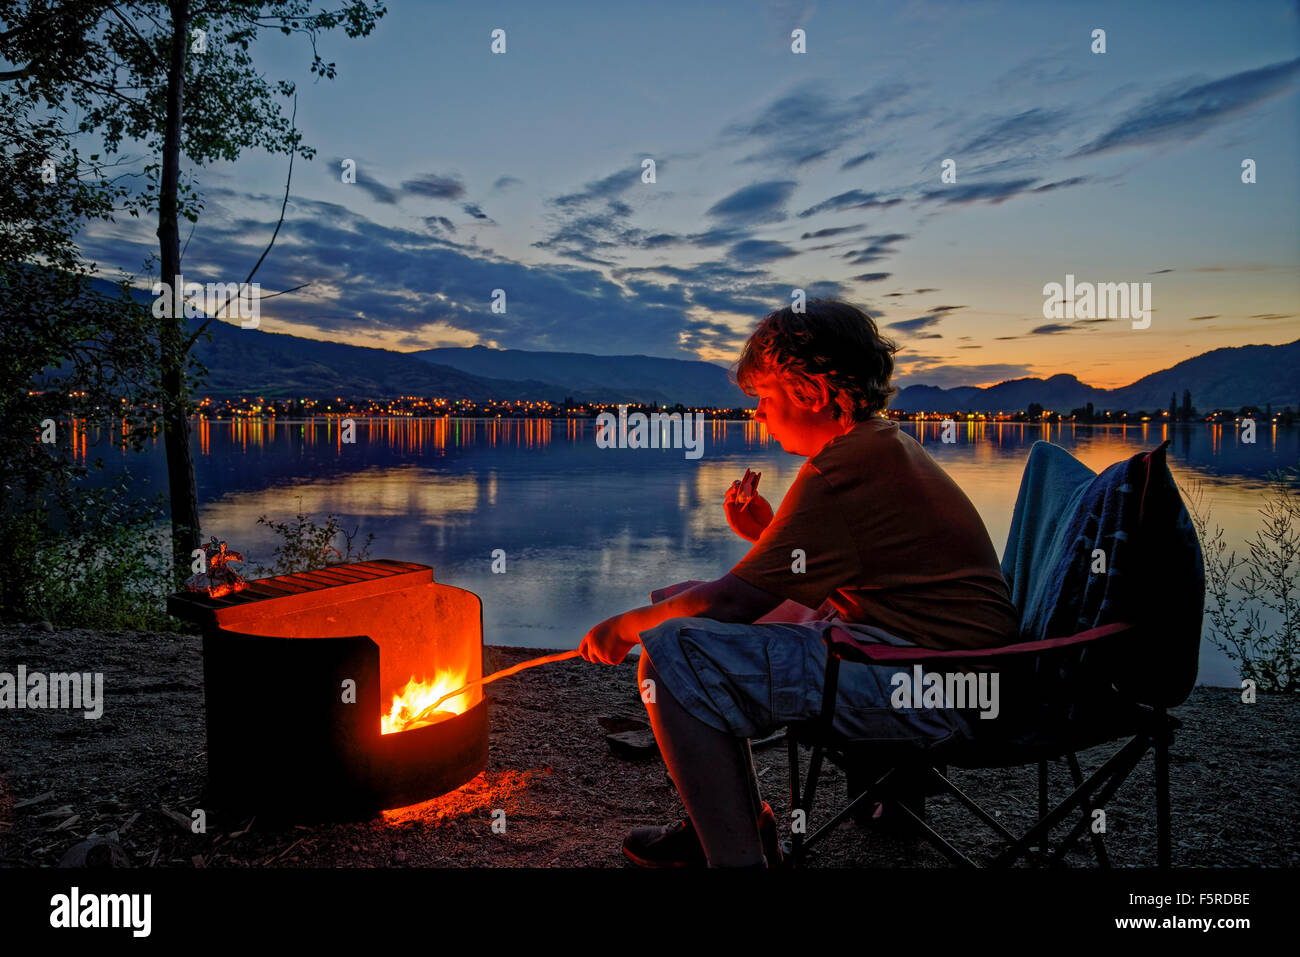 Boy roasts marshmallow in campfire at lakeshore campsite, sẁiẁs  Provincial Park, Osoyoos, British Columbia, Canada Stock Photo